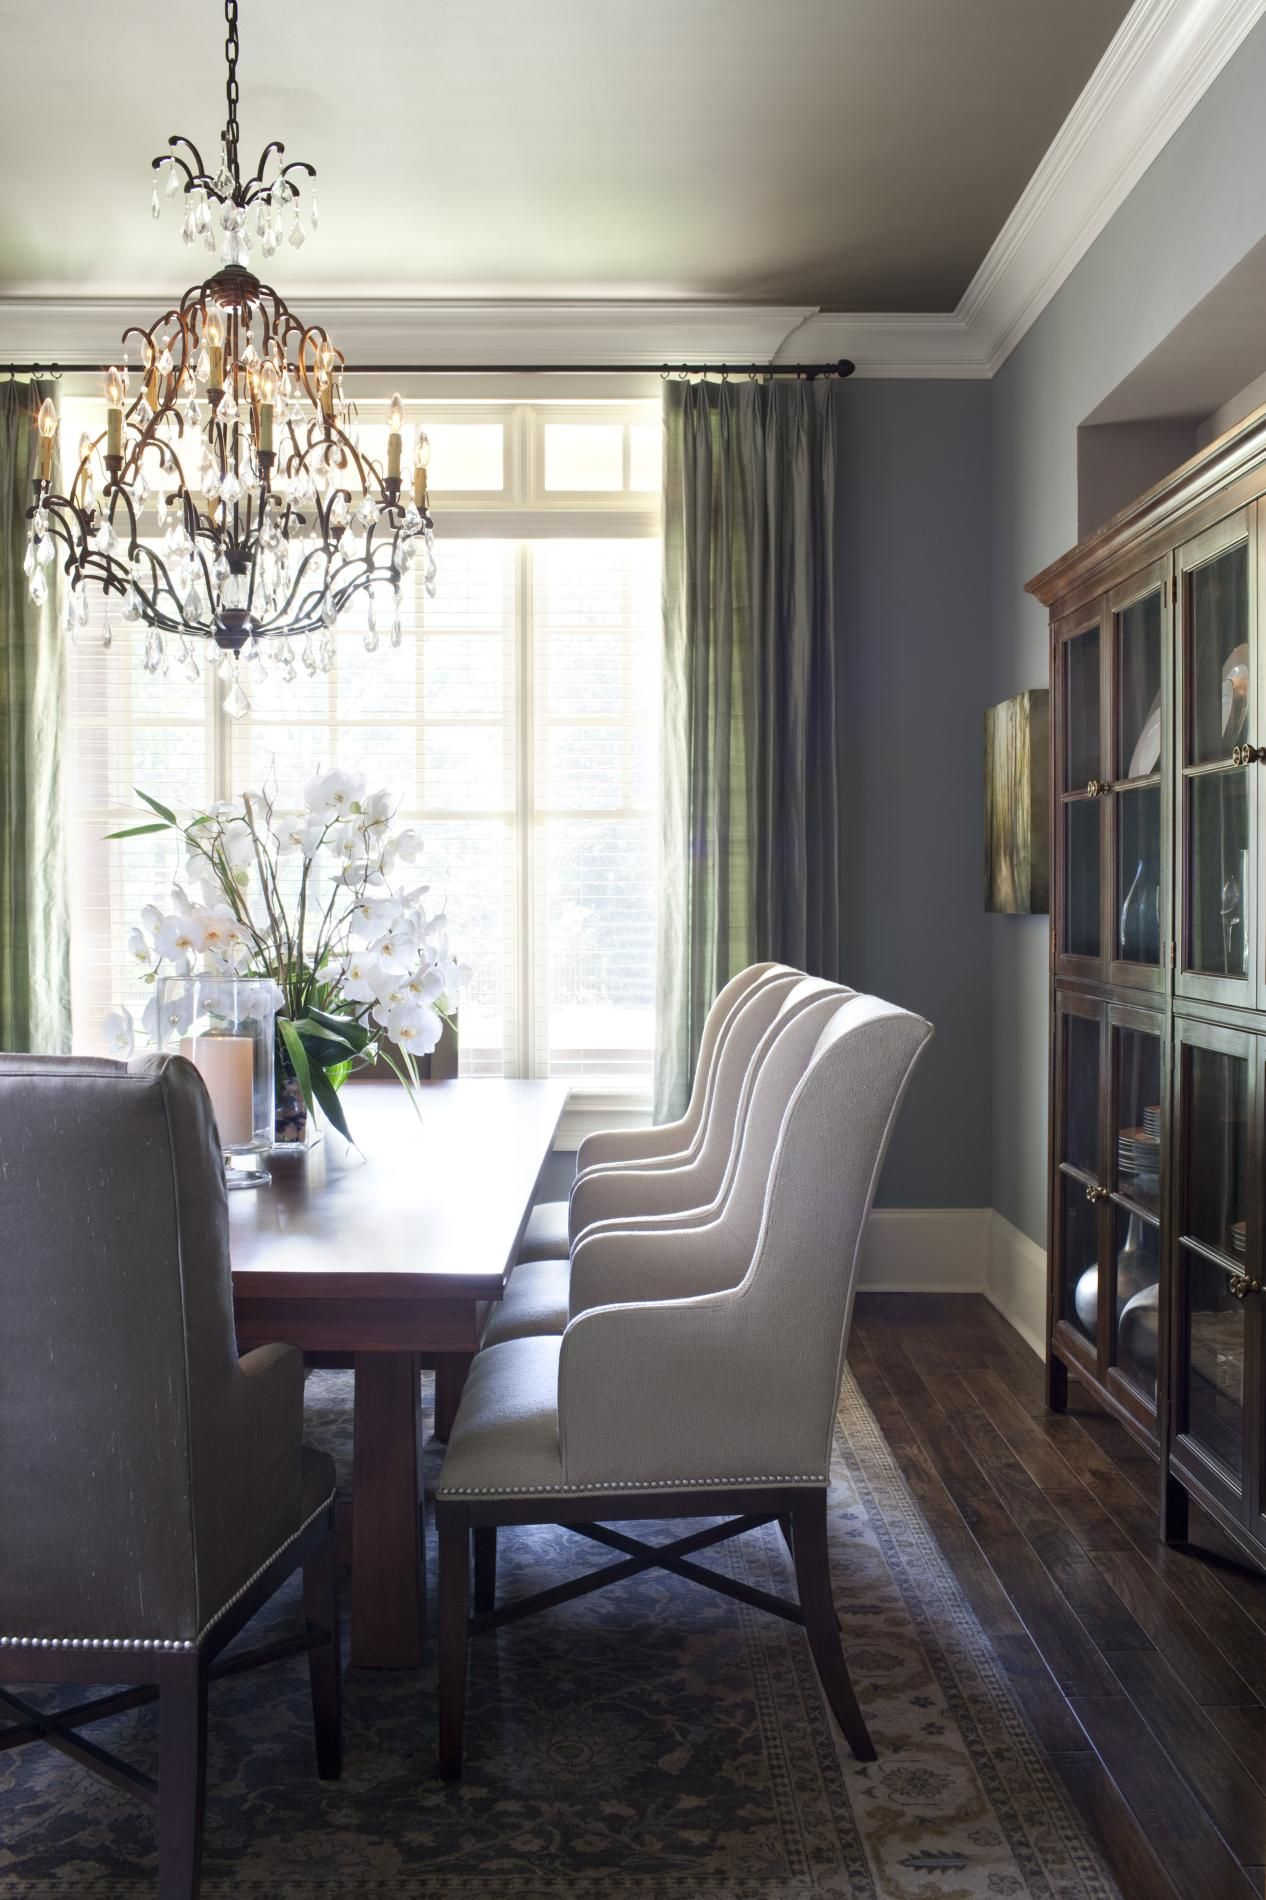 Atlanta Transitional Dining Room By J Designs   Idea Of Running Dining Table  Opposite Of Way You Currently Have It Photo Gallery